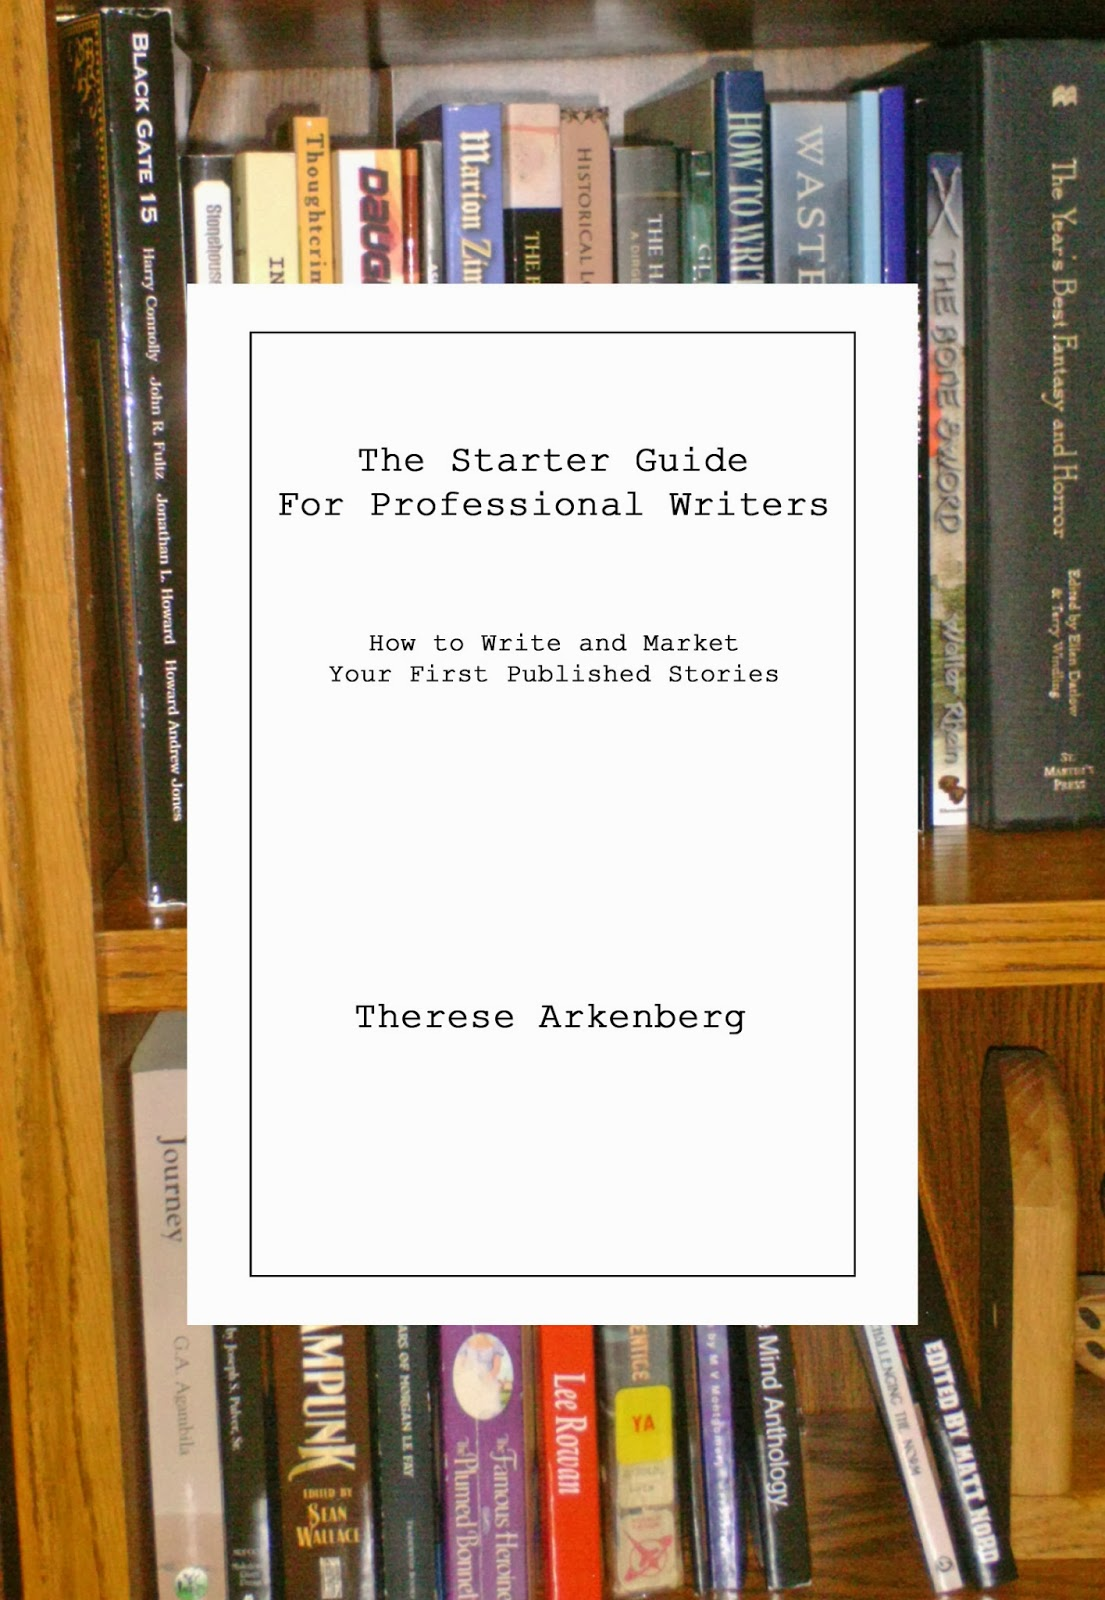 The Starter Guide for Professional Writers is Complete! Completely Complete!